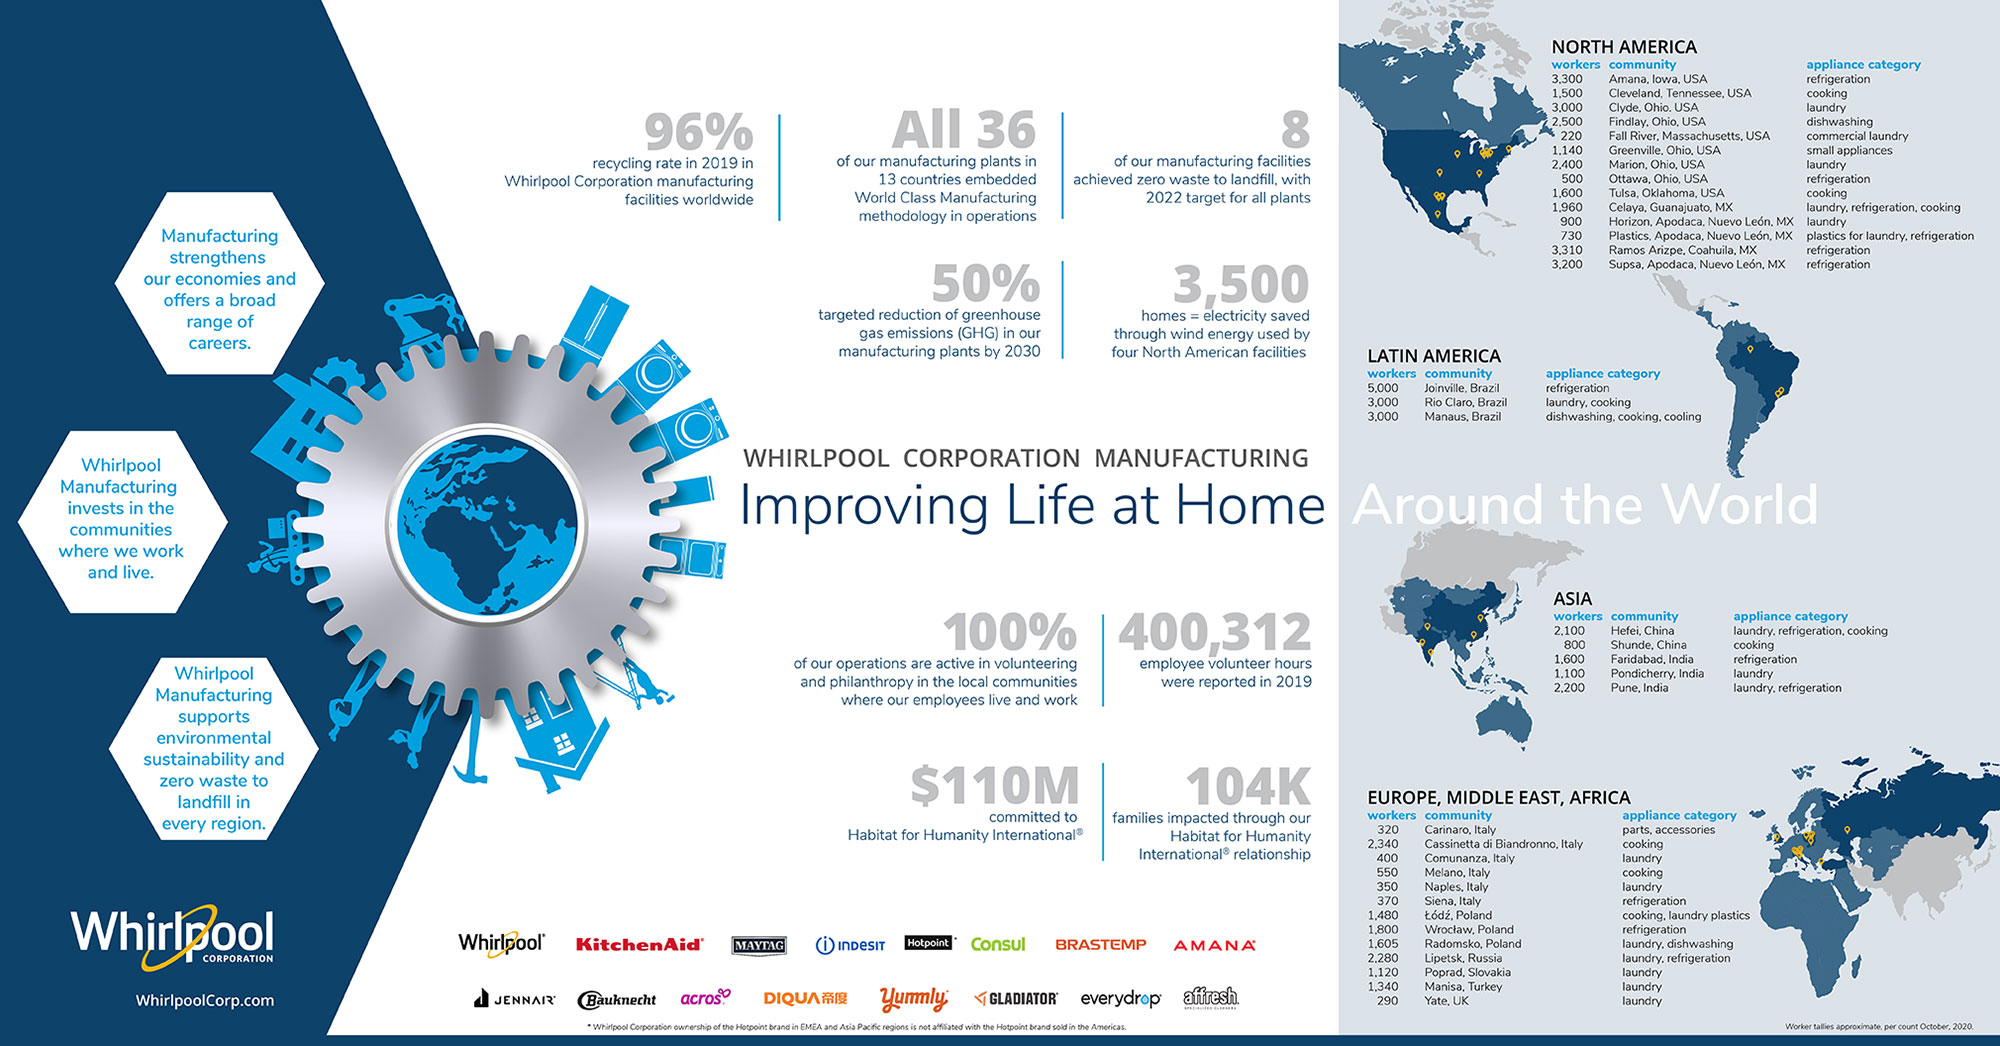 Whirlpool Corporation Global Manufacturing At-a-Glance 3